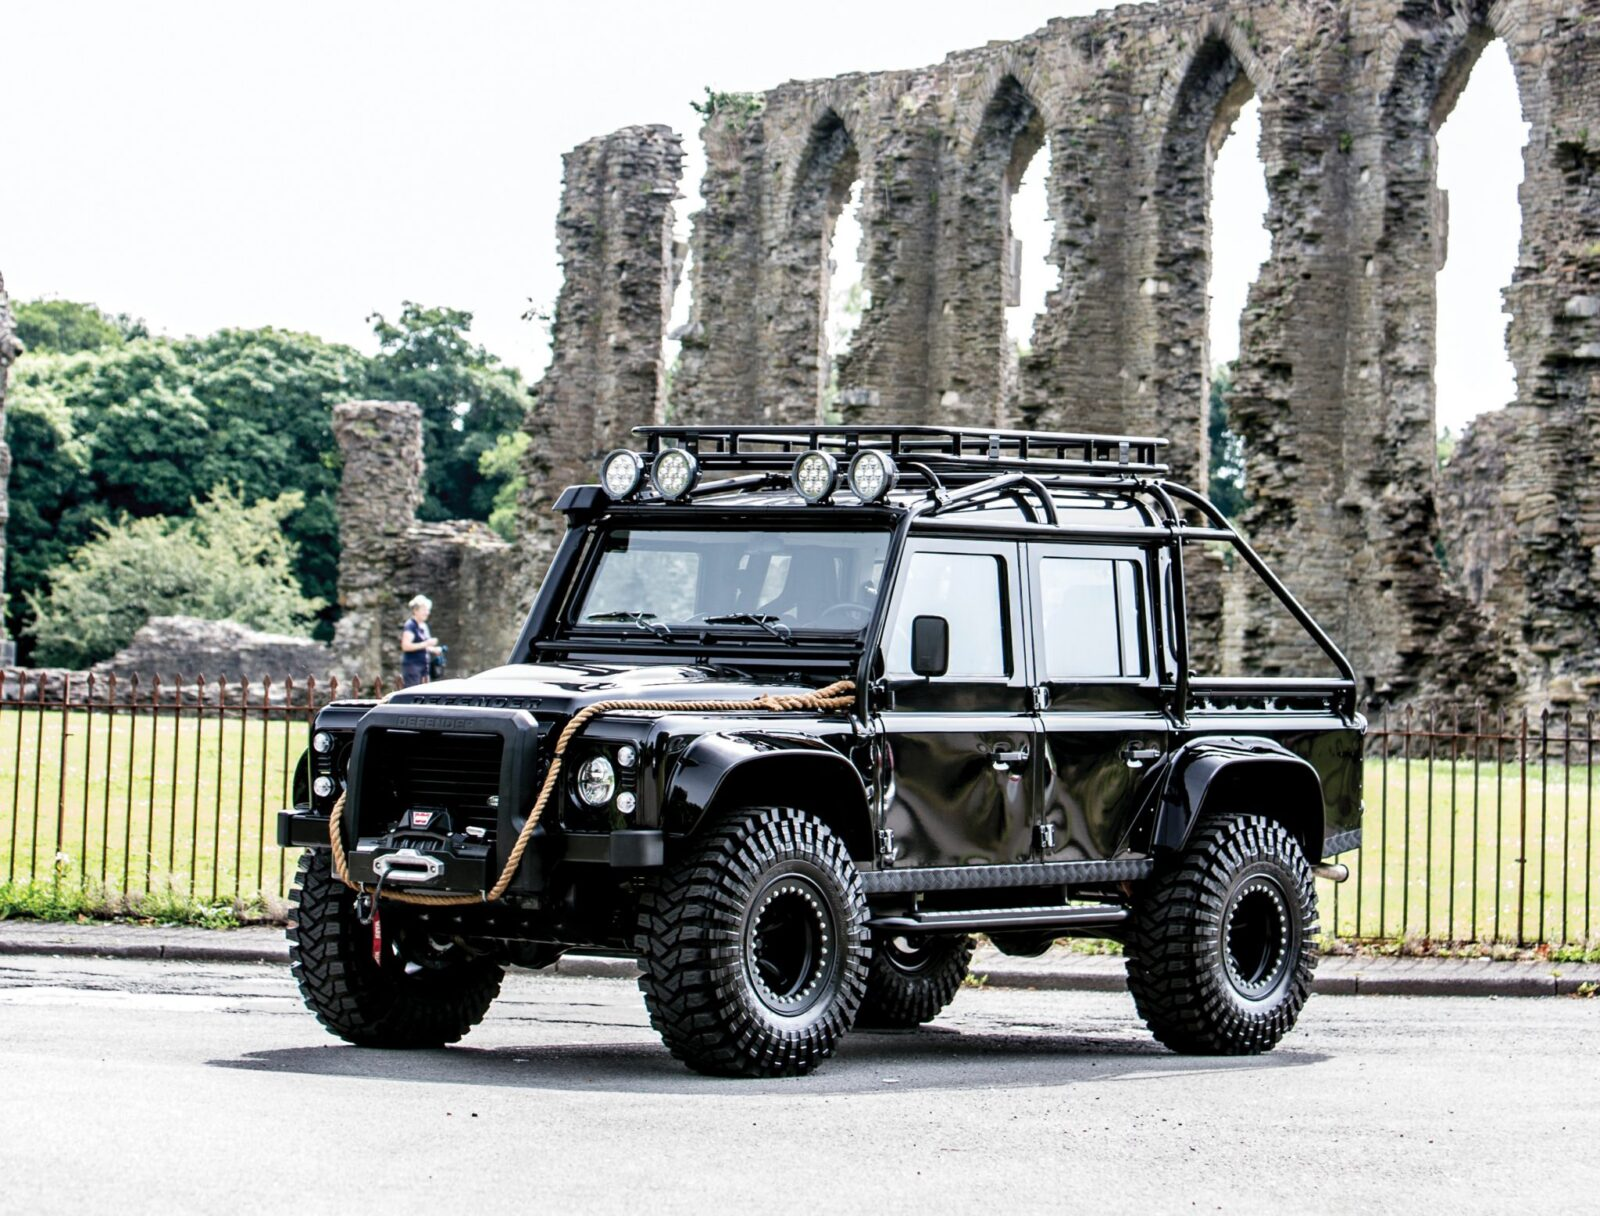 james bond spectre land rover defender svx 17 1600x1216 - Ex-James Bond Spectre - Land Rover Defender SVX